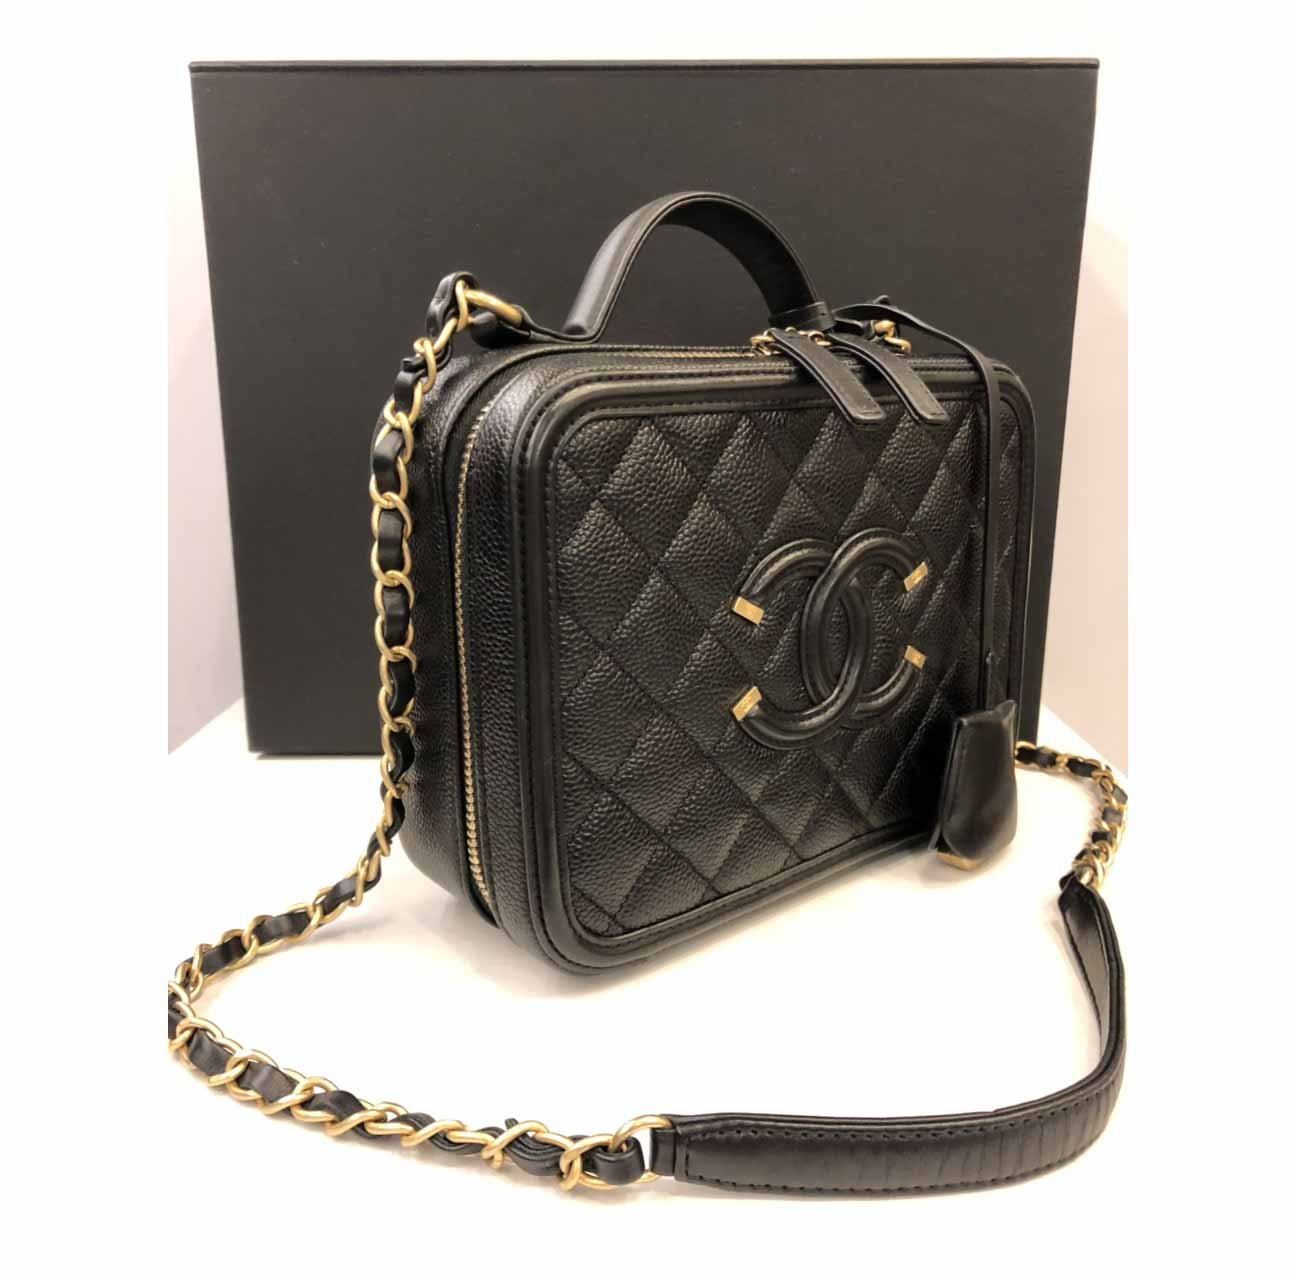 b29d4877b0c3 Details about Authentic Chanel Caviar Quilted Leather Filigree Vanity Case  Lunch Box Bag